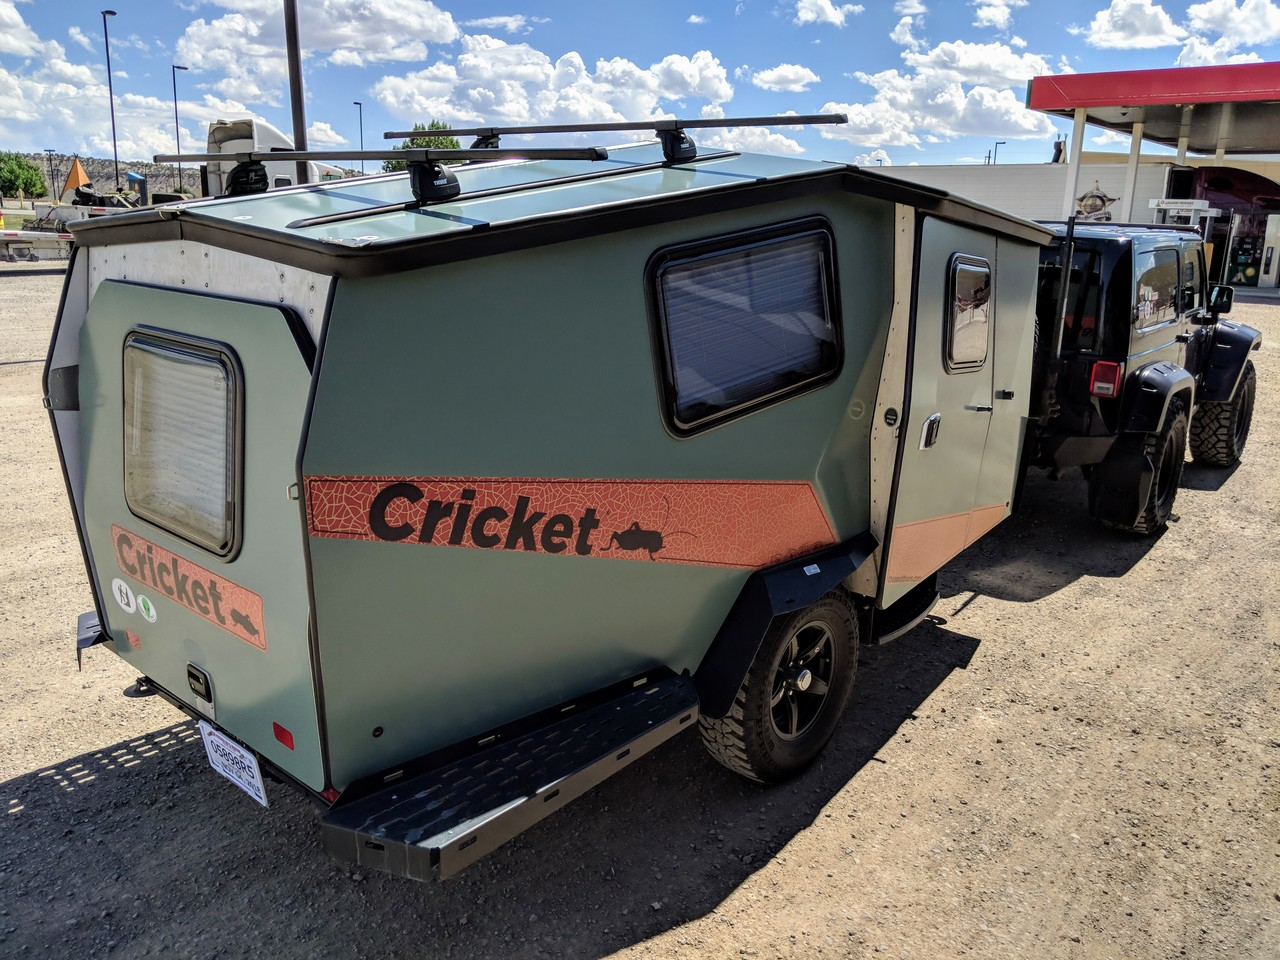 Cricket on the road